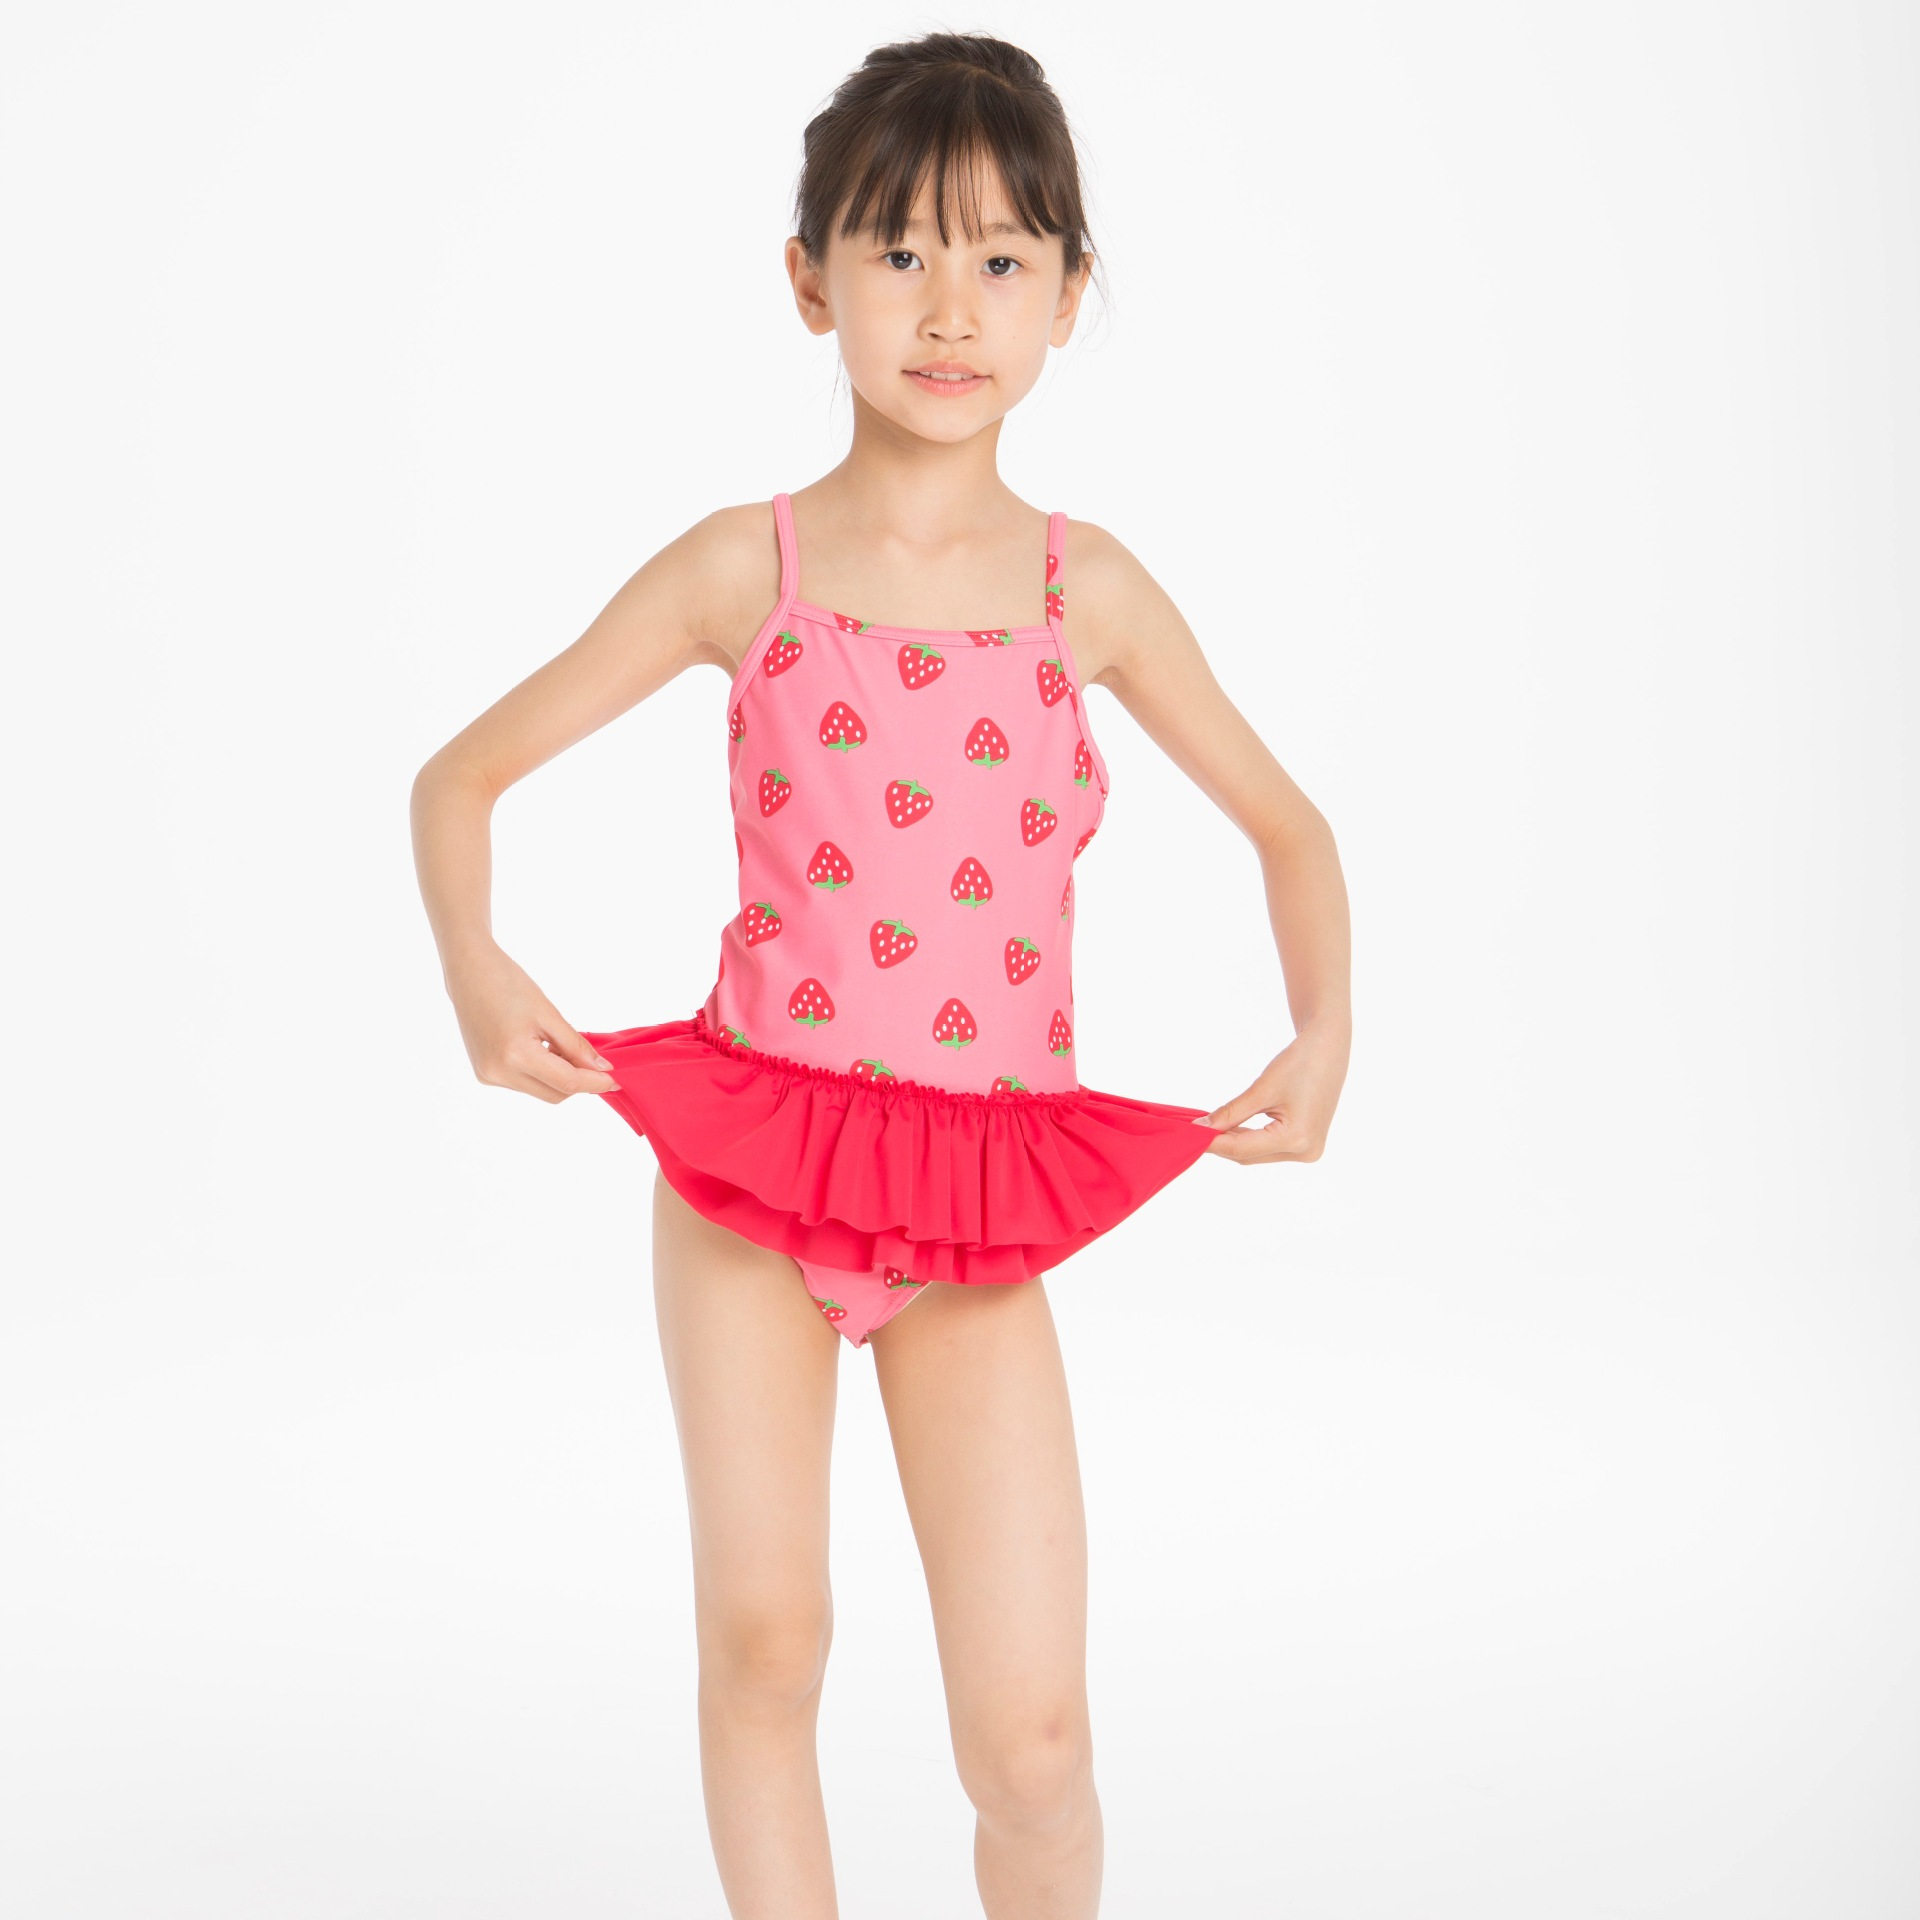 Cross Border Electricity Supplier Supply Of Goods Jinguoyiyi Strawberry Girls One-piece Flounced CHILDREN'S Swimwear Factory